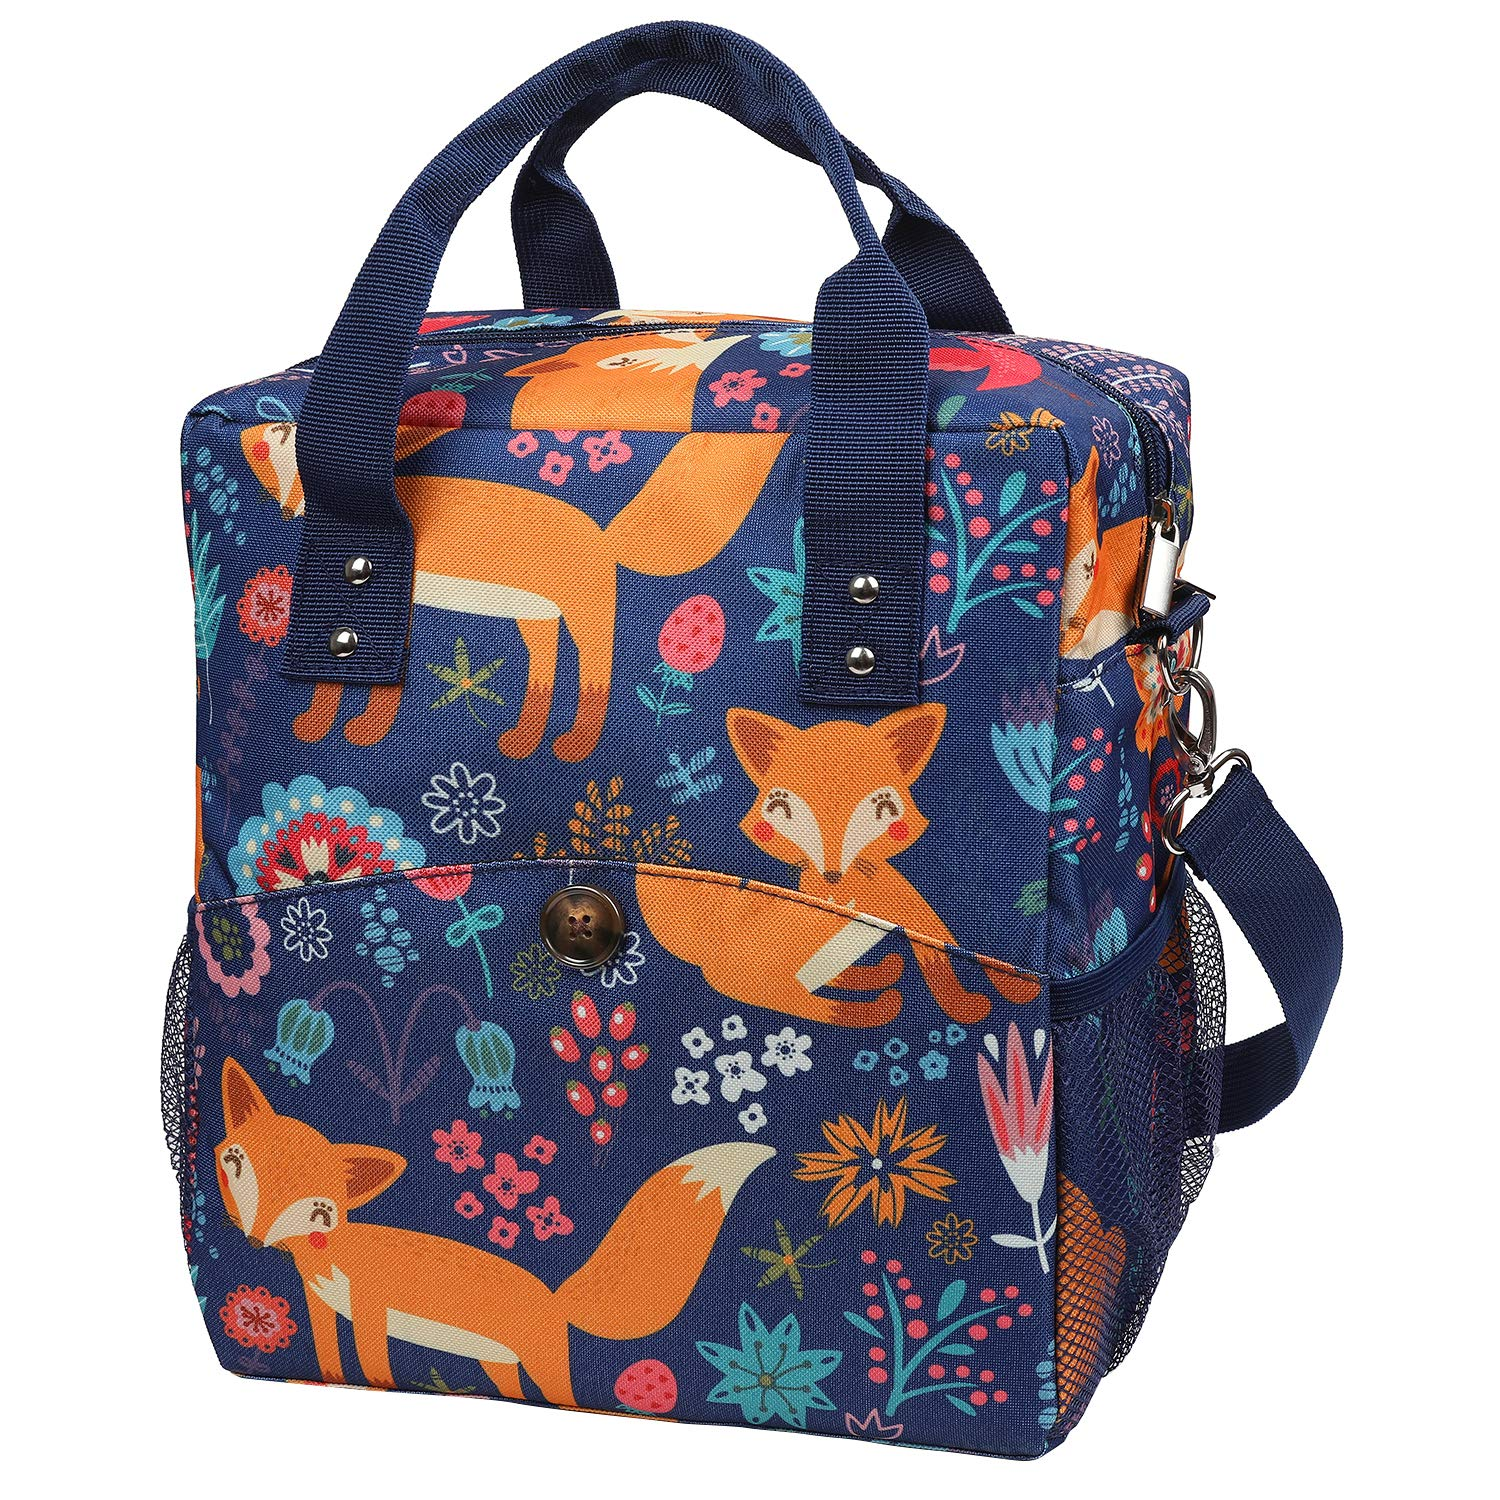 Insulated Cooler Bag For Carrying Lunch Box With Adjustable Shoulder Lunch Bag